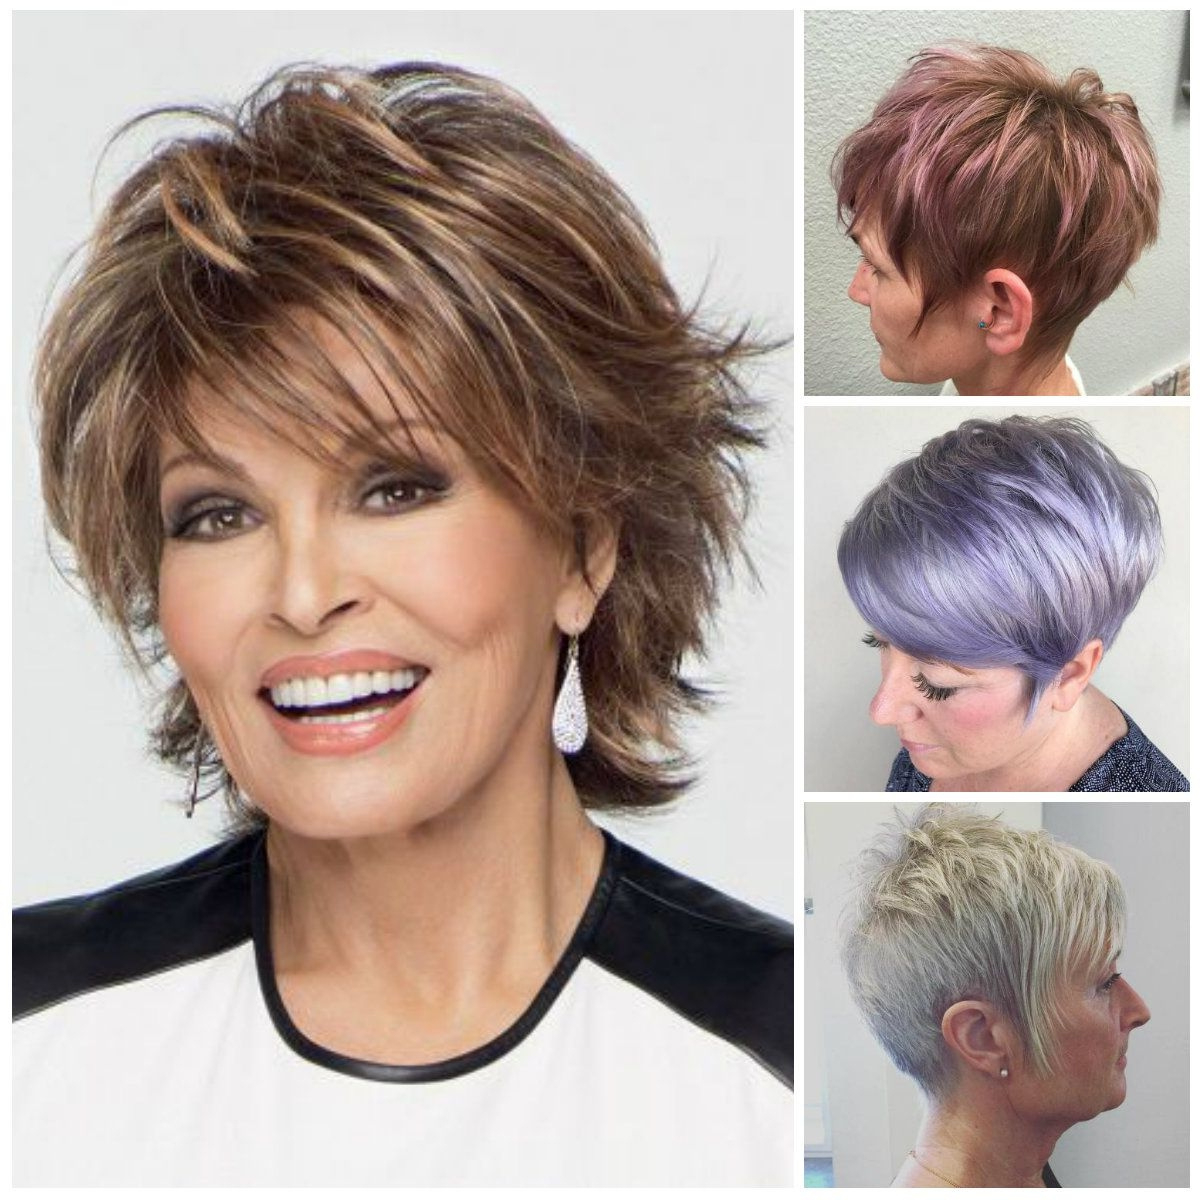 2019 Short Hairstyles For Over 60 Years Old With Glasses Awesome Throughout Short Hairstyles For Ladies With Glasses (View 25 of 25)